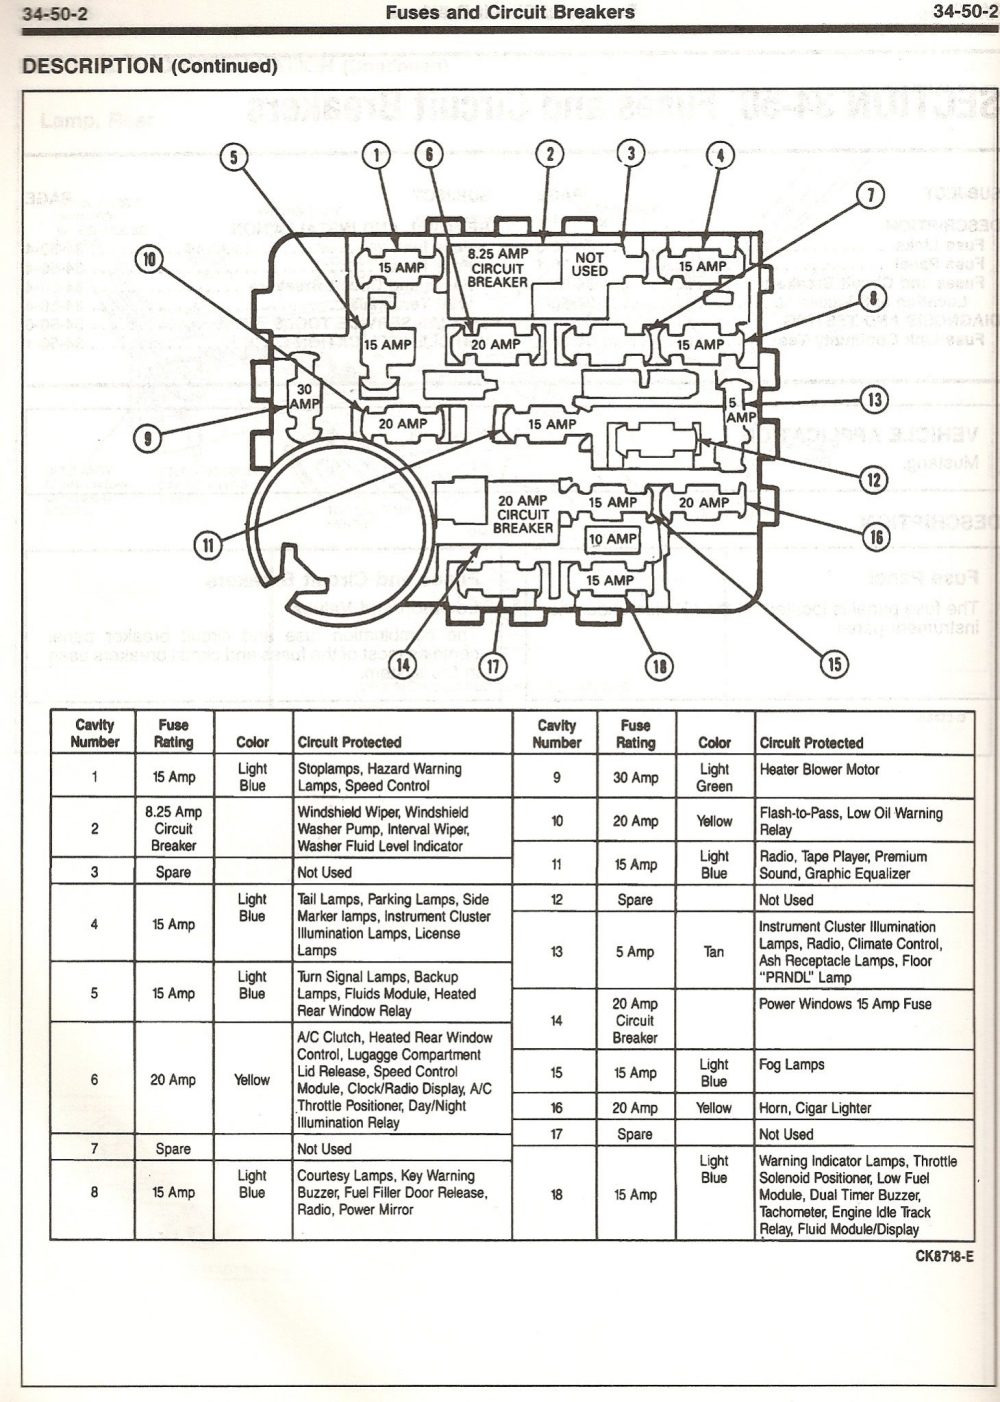 medium resolution of 1990 ford f 250 5 0 fuse diagram wiring diagram used 1990 ford taurus fuse box diagram 1990 ford fuse box diagram